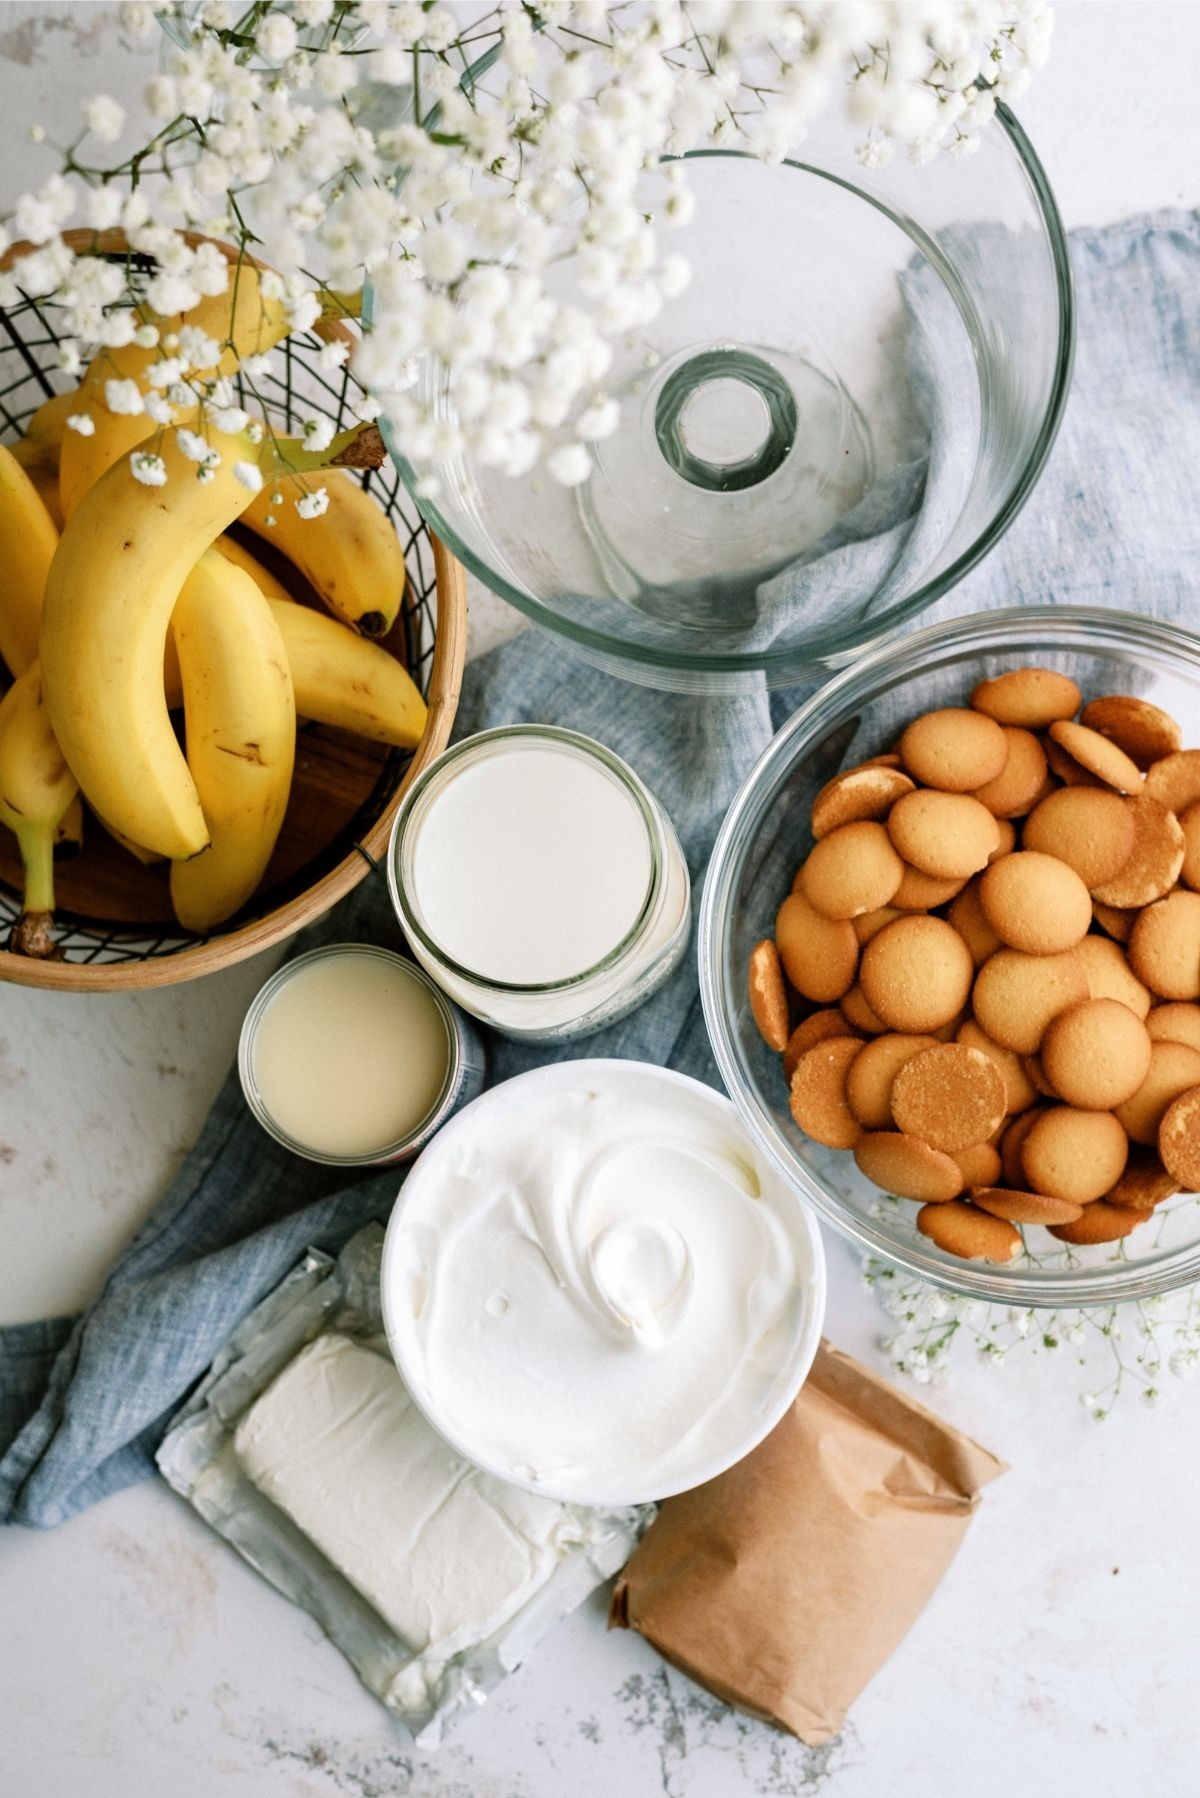 Ingredients for The Best Banana Pudding (Trifle) Recipe